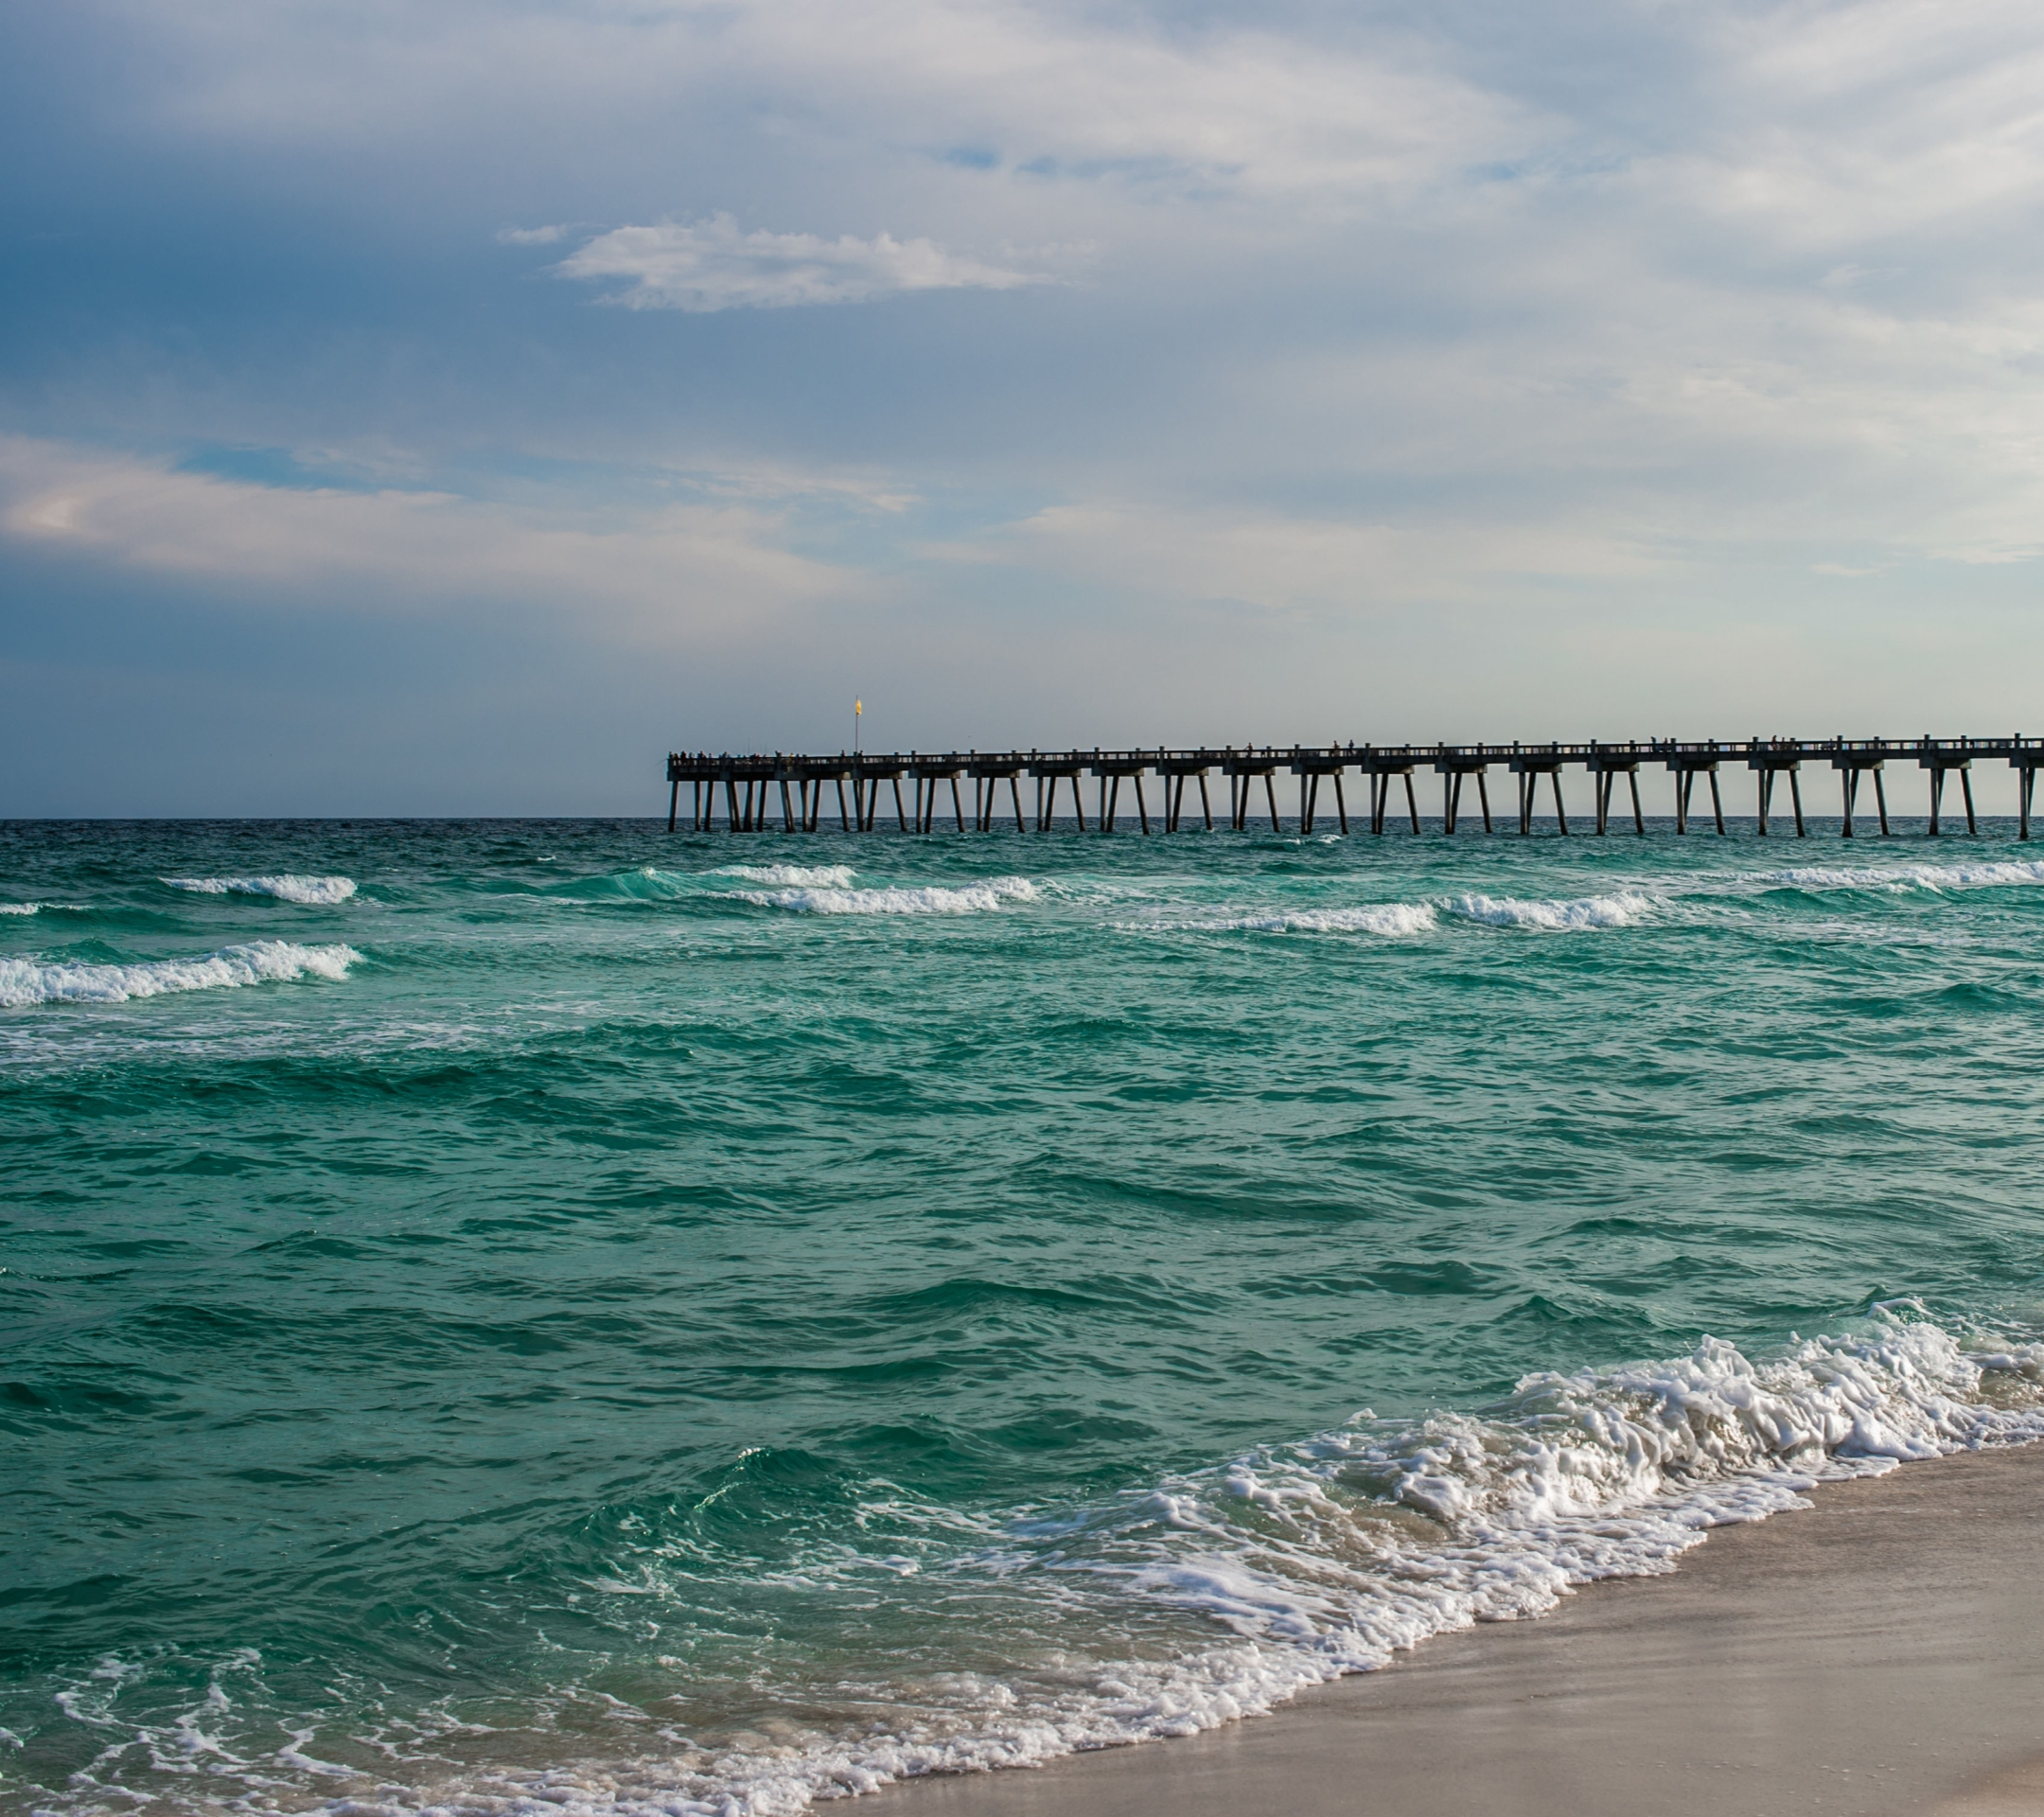 Live Wallpaper Free Iphone X Download Pensacola Beach Wallpaper Gallery